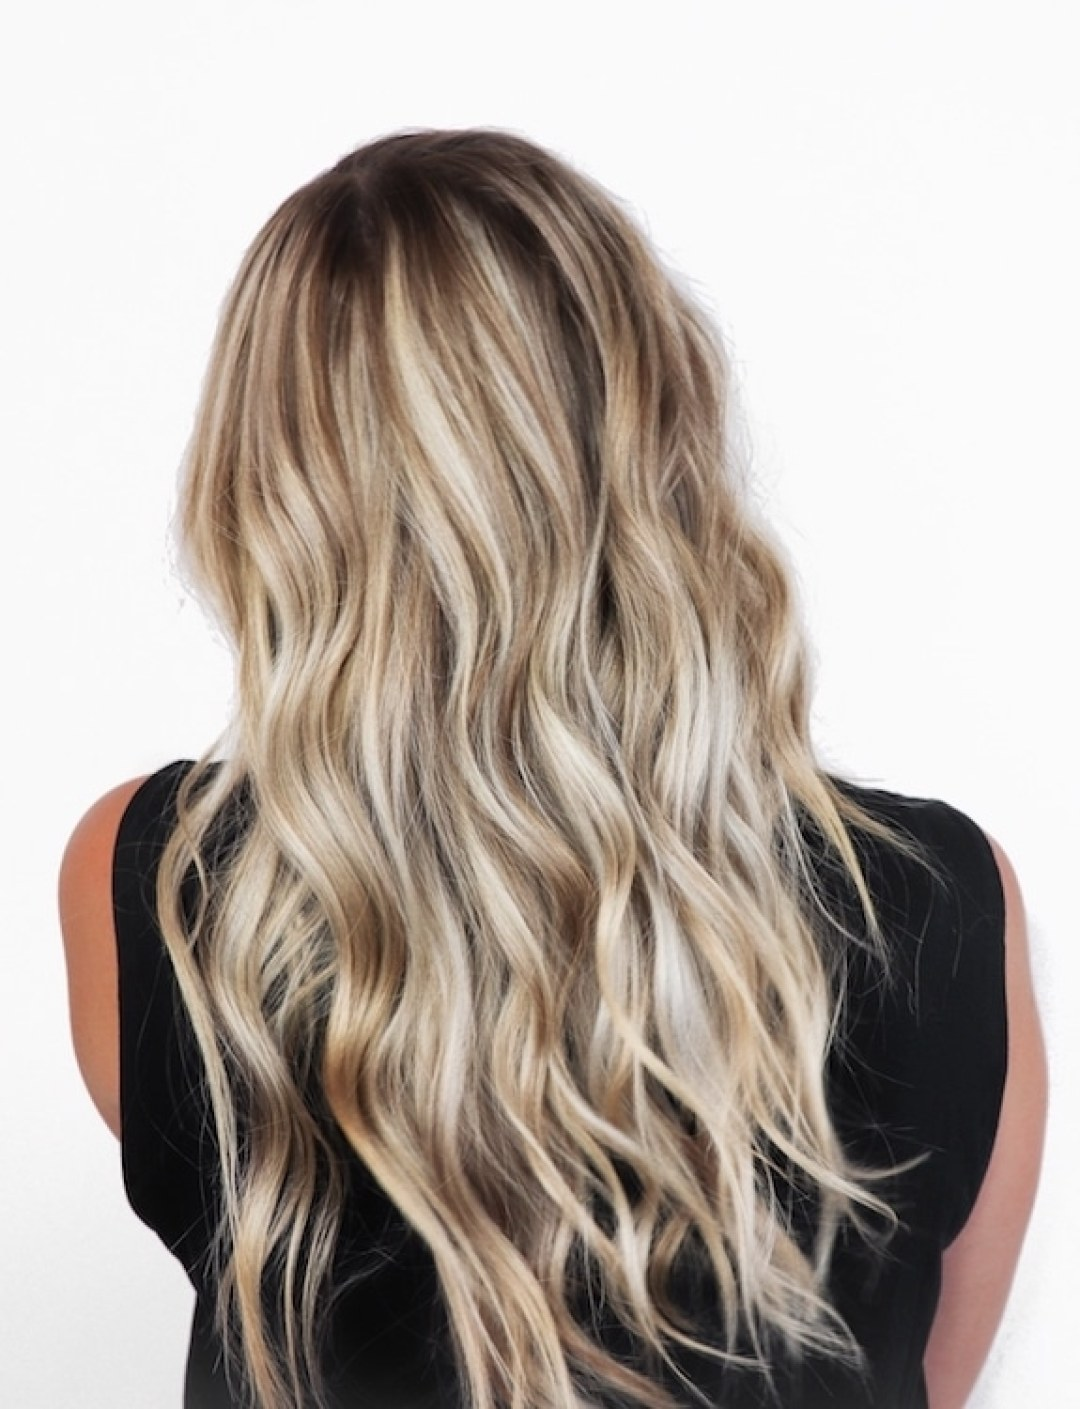 Hair Care Guide for Blondes